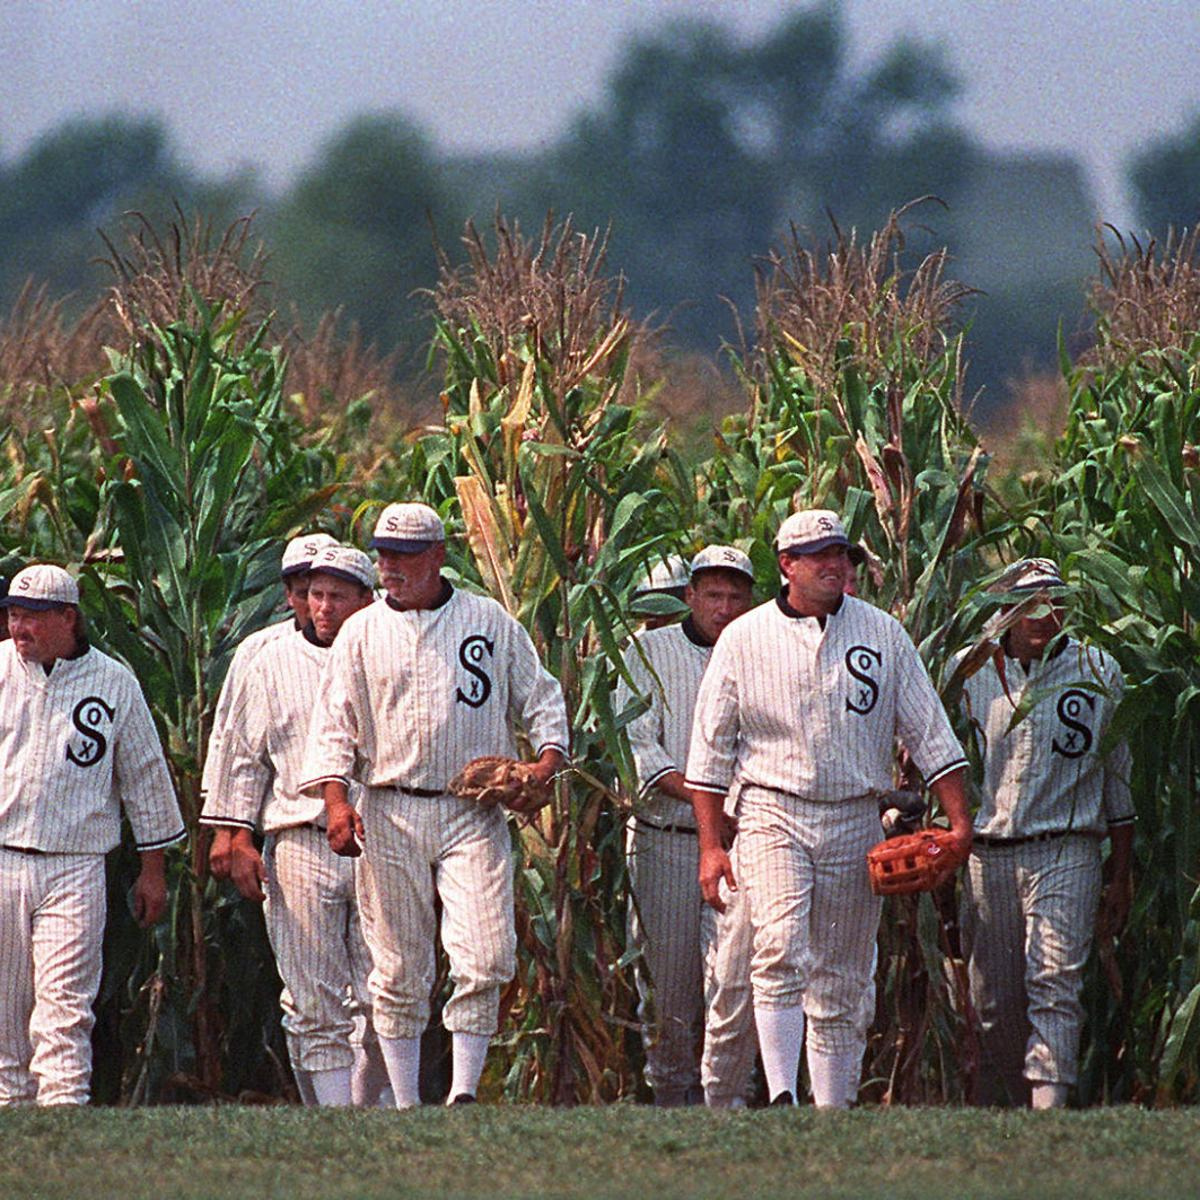 Baseball in Iowa: White Sox to host Yankees at Field of